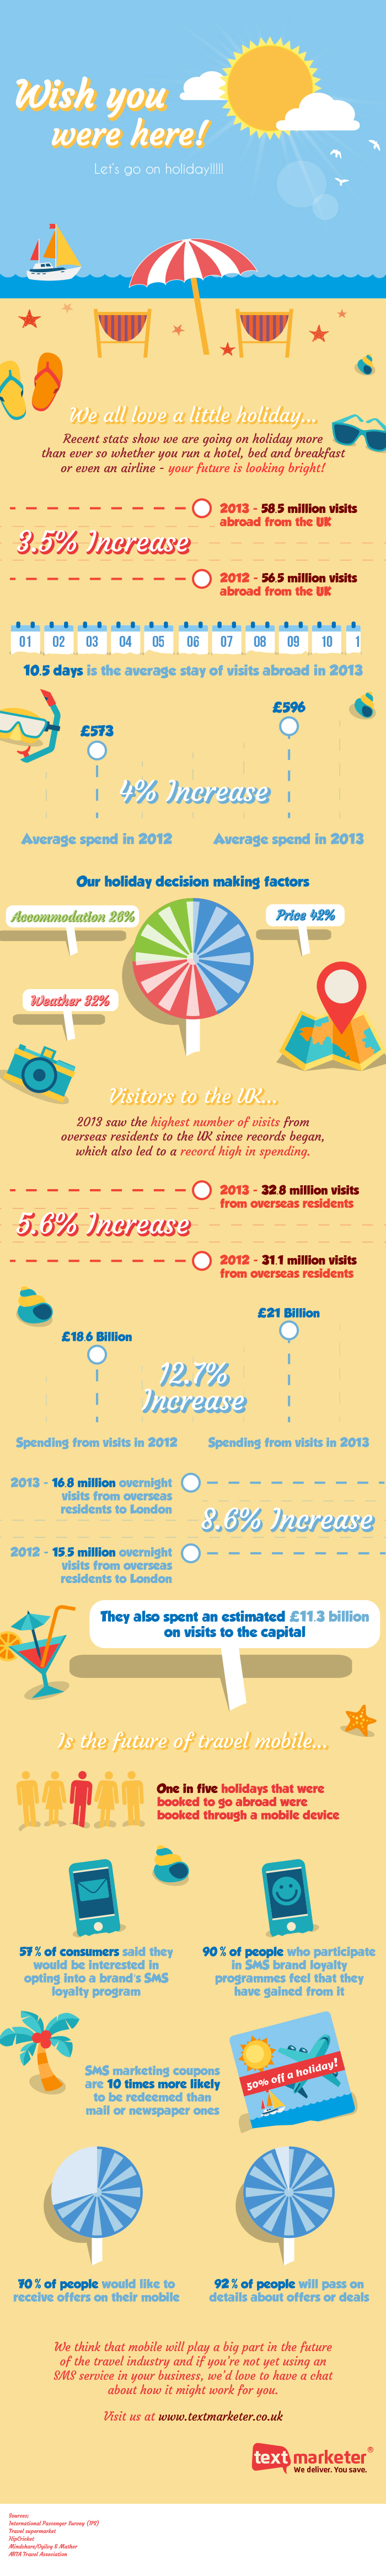 Mobile marketing during the Summer holidays. Statistics in one infographic